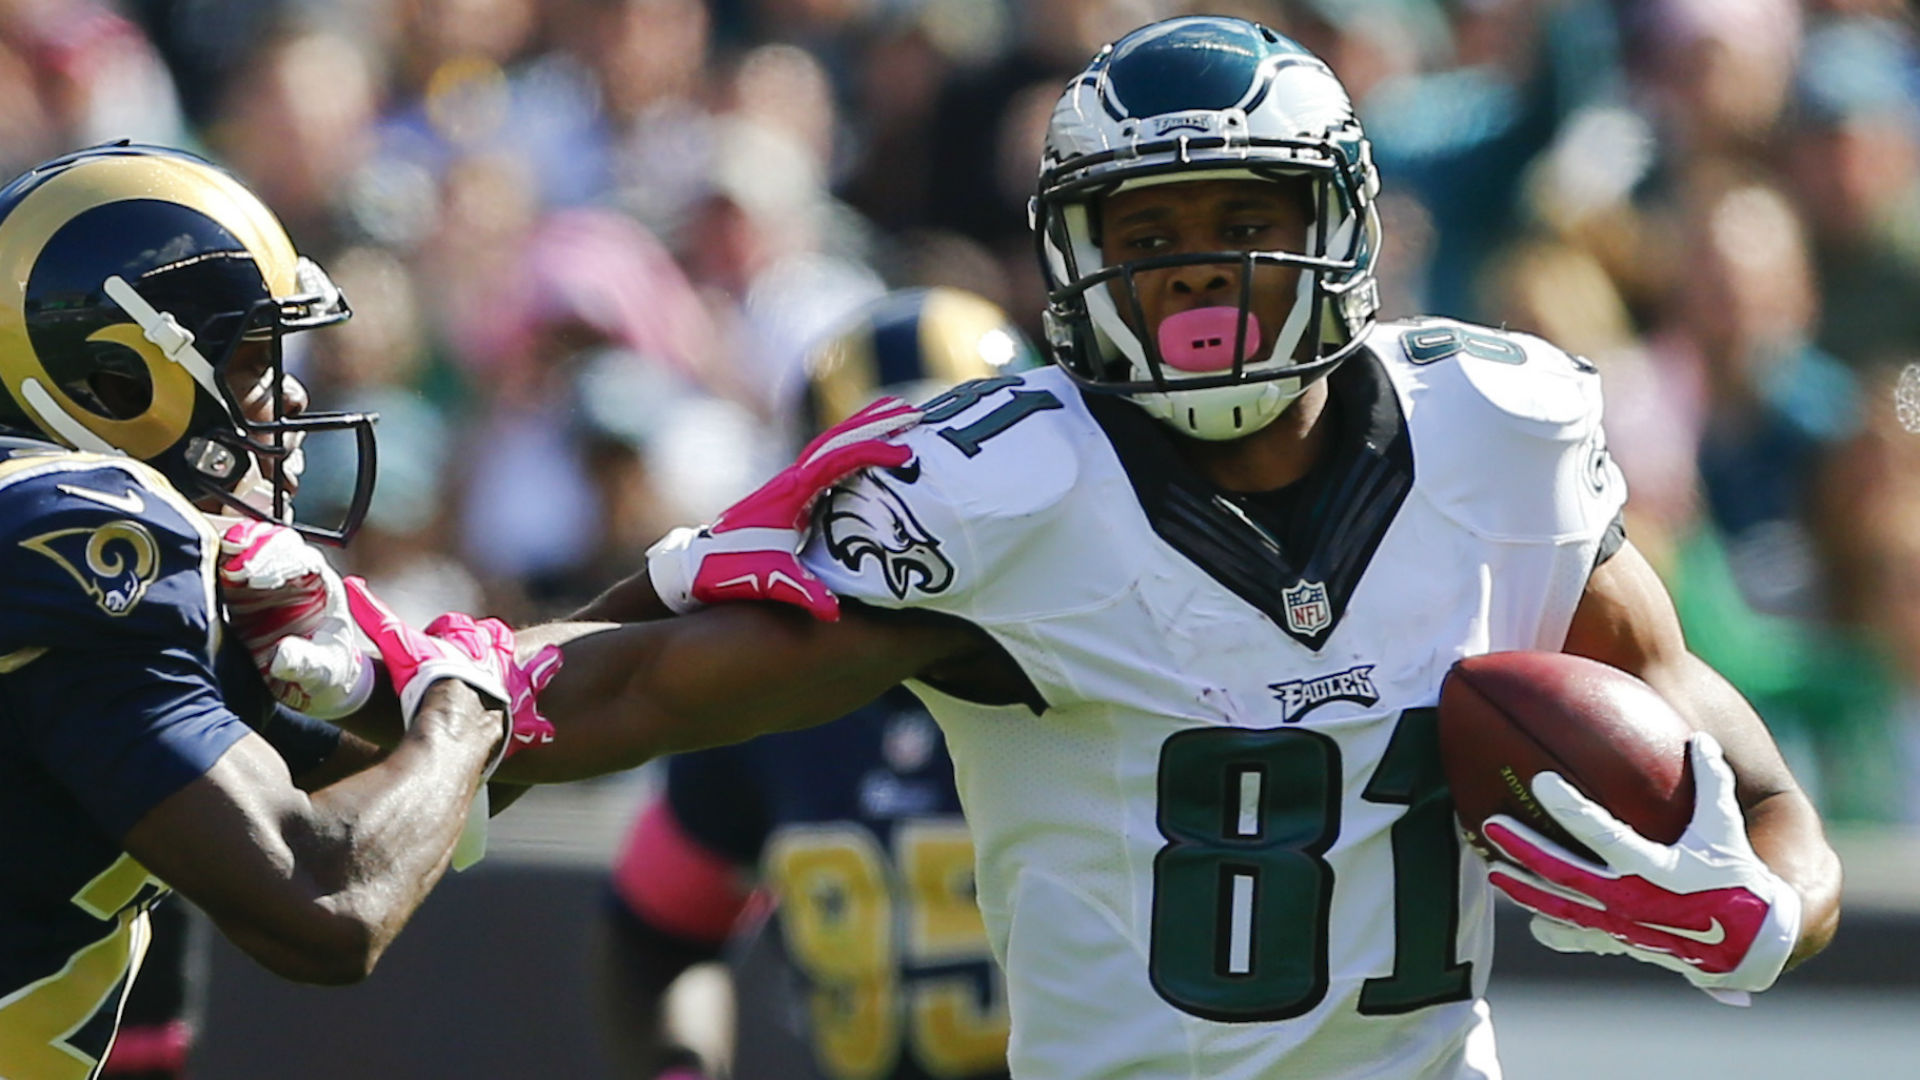 Fantasy Football Sleepers 2015: Matthews spreading his wings